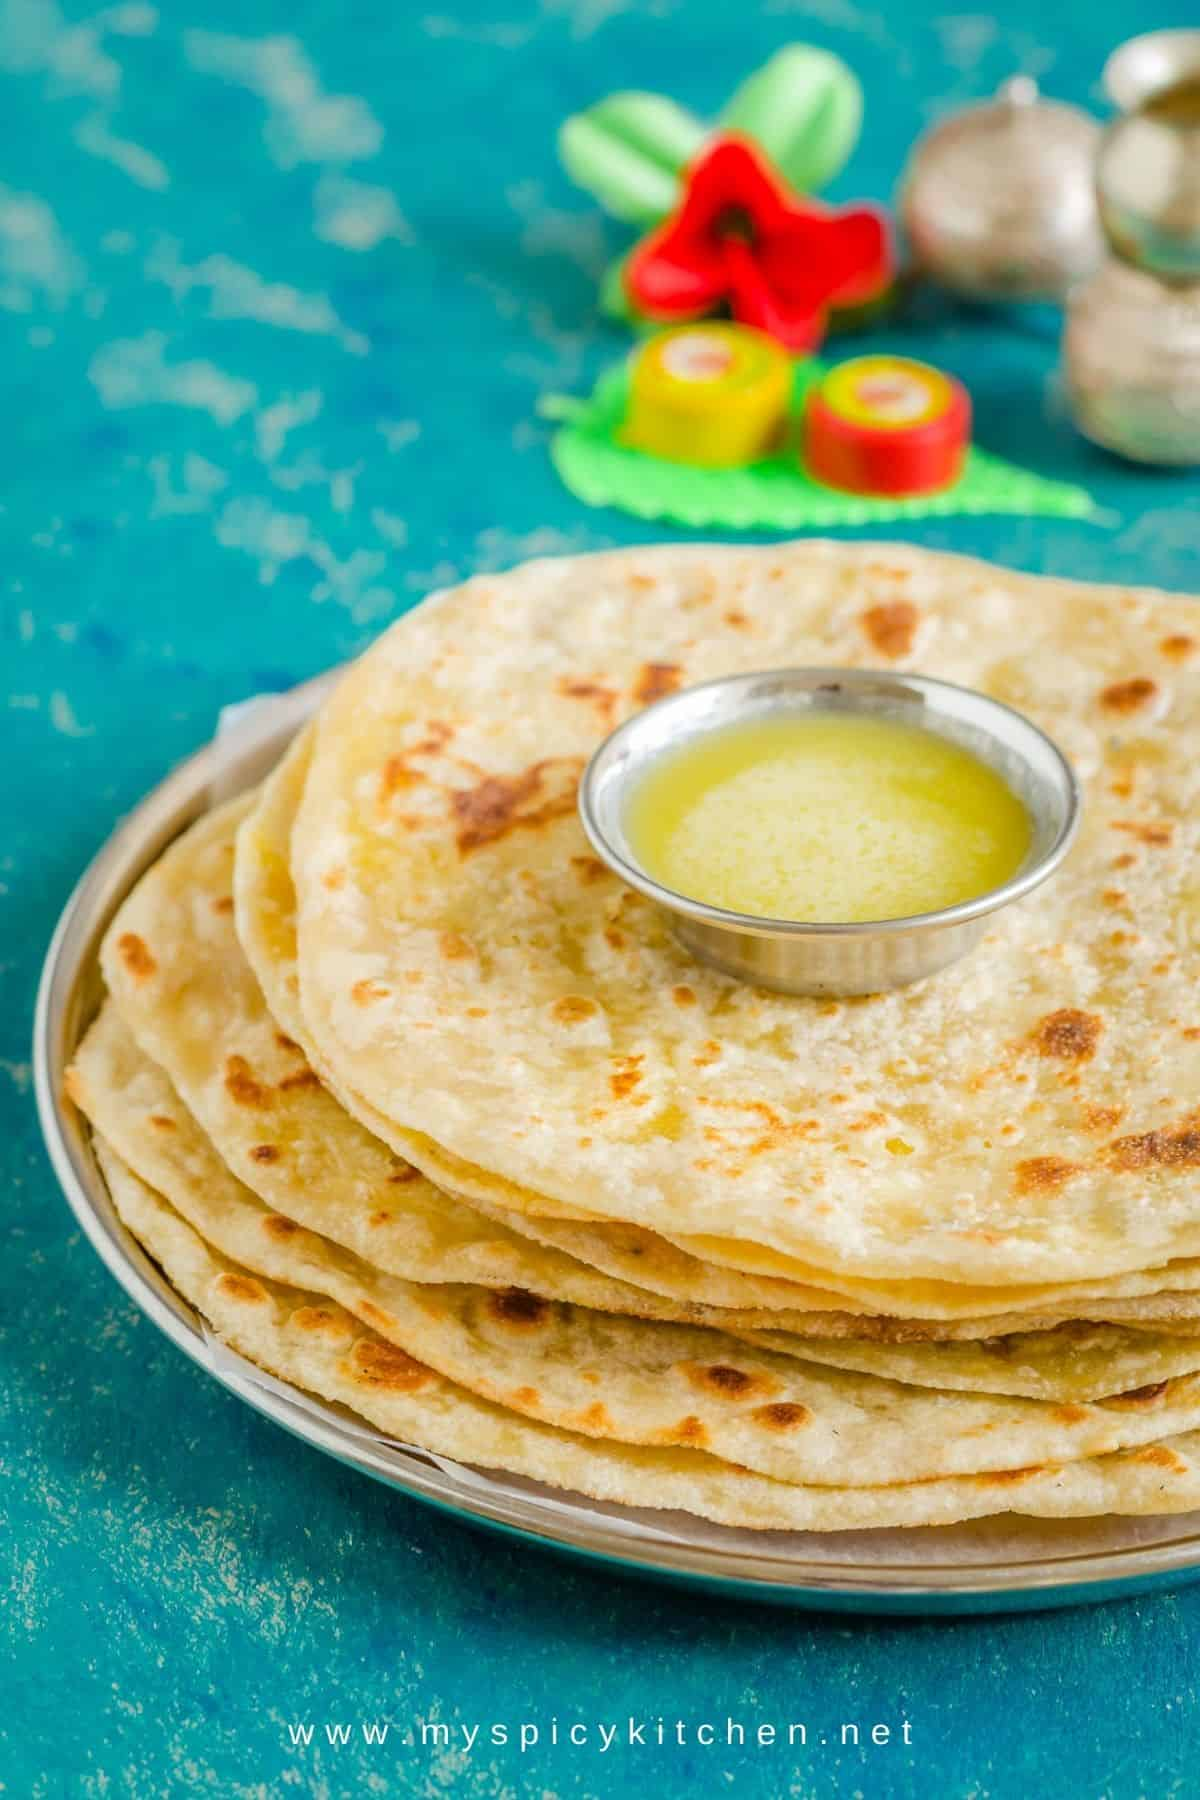 A stack of bakshalu with a bowl of ghee on top.